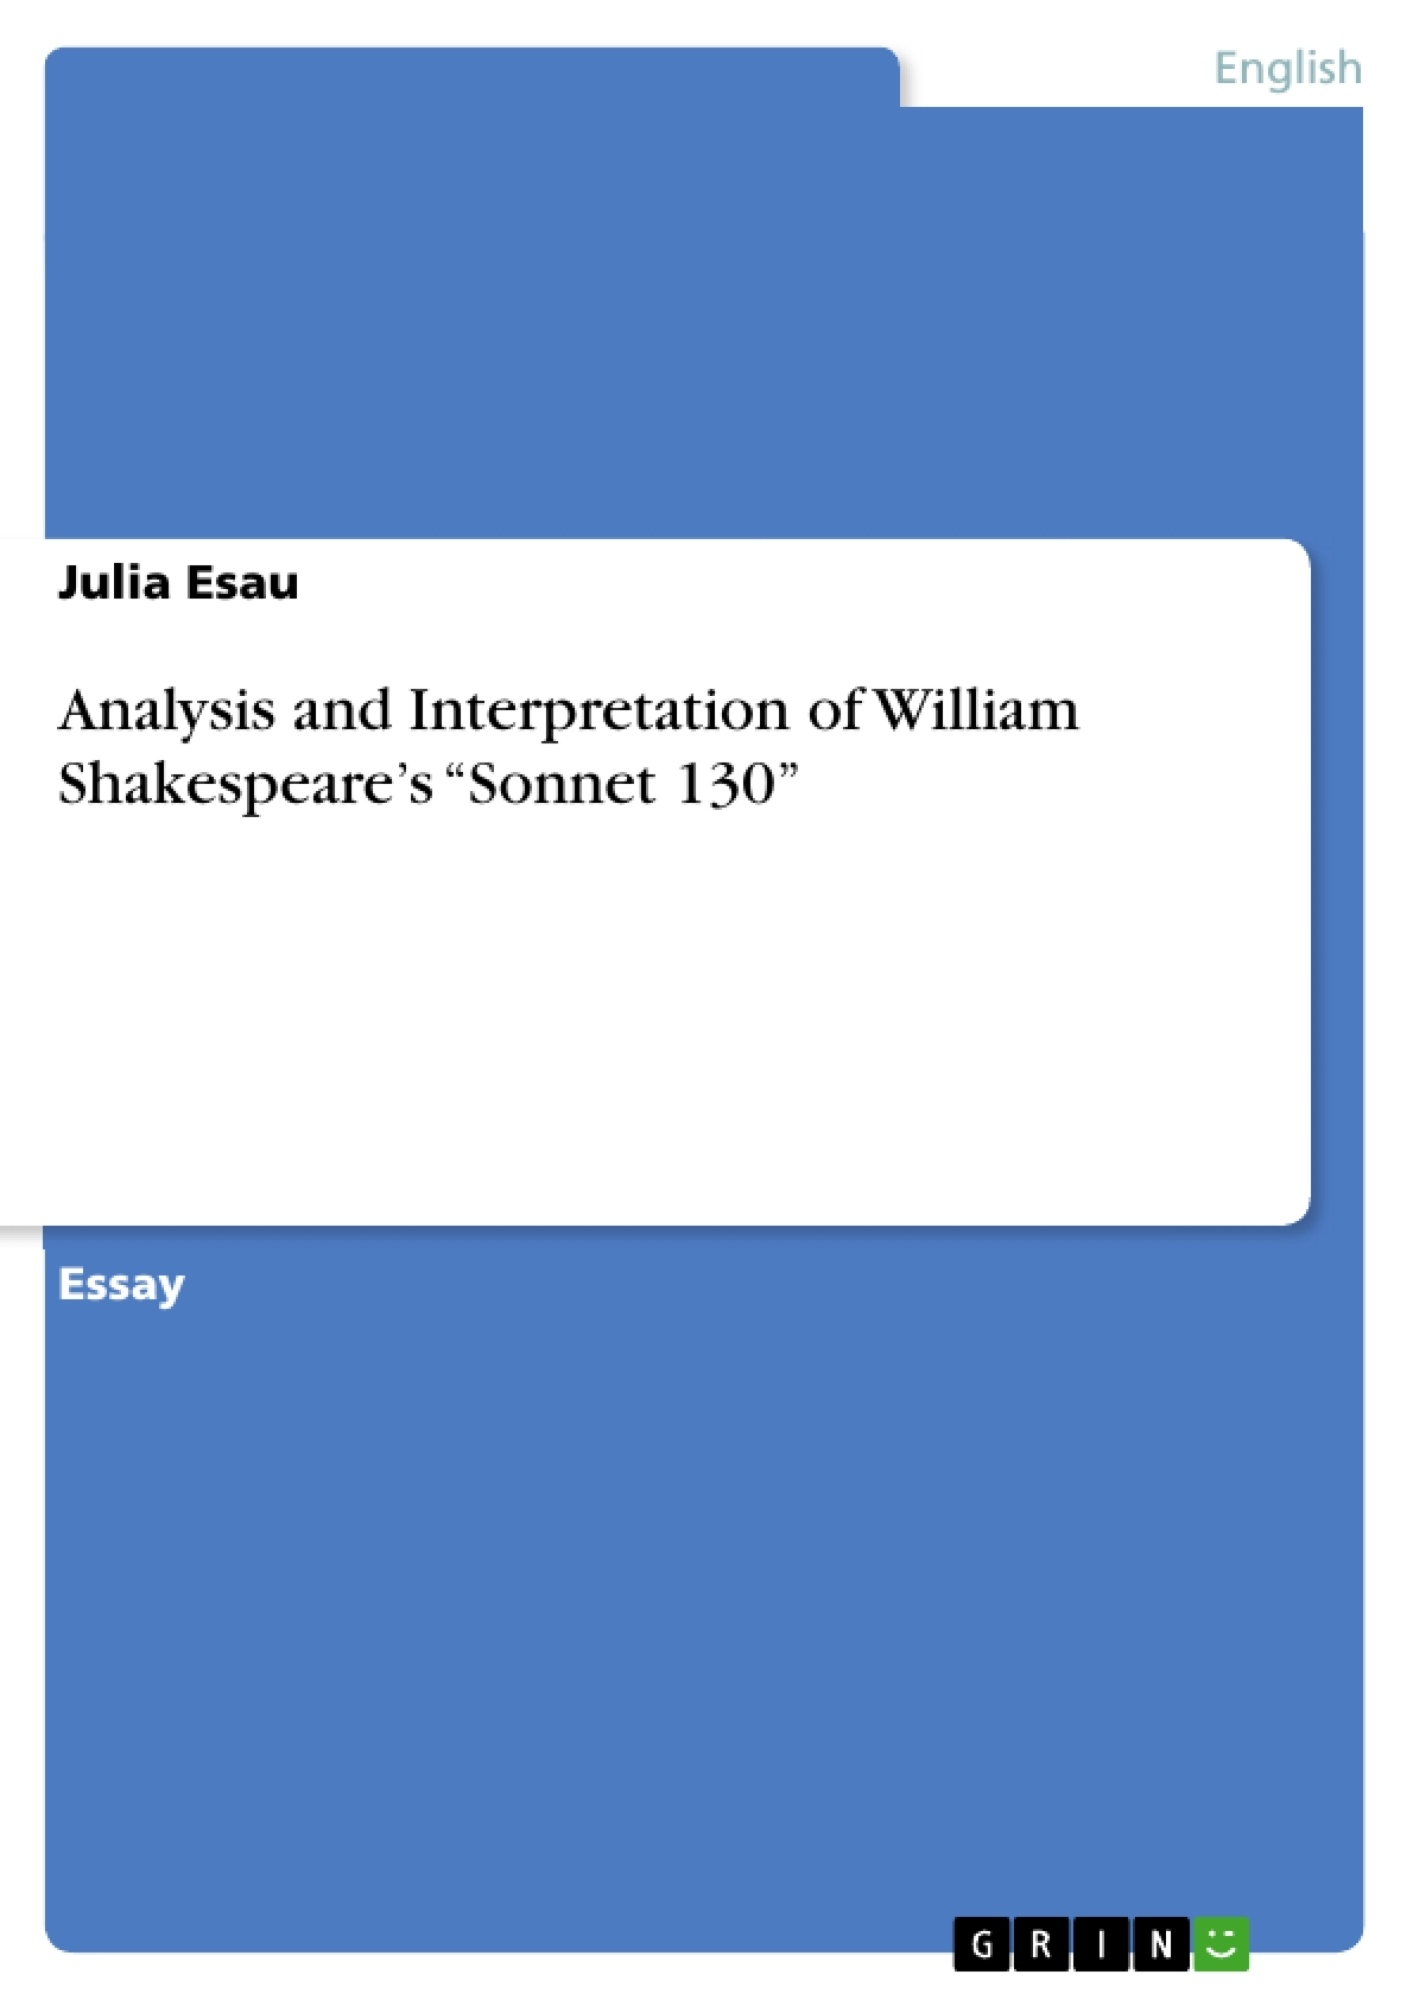 essay on shakespeare life analysis and interpretation of william  analysis and interpretation of william shakespeare s sonnet analysis and interpretation of william shakespeare s sonnet life changing moment essay